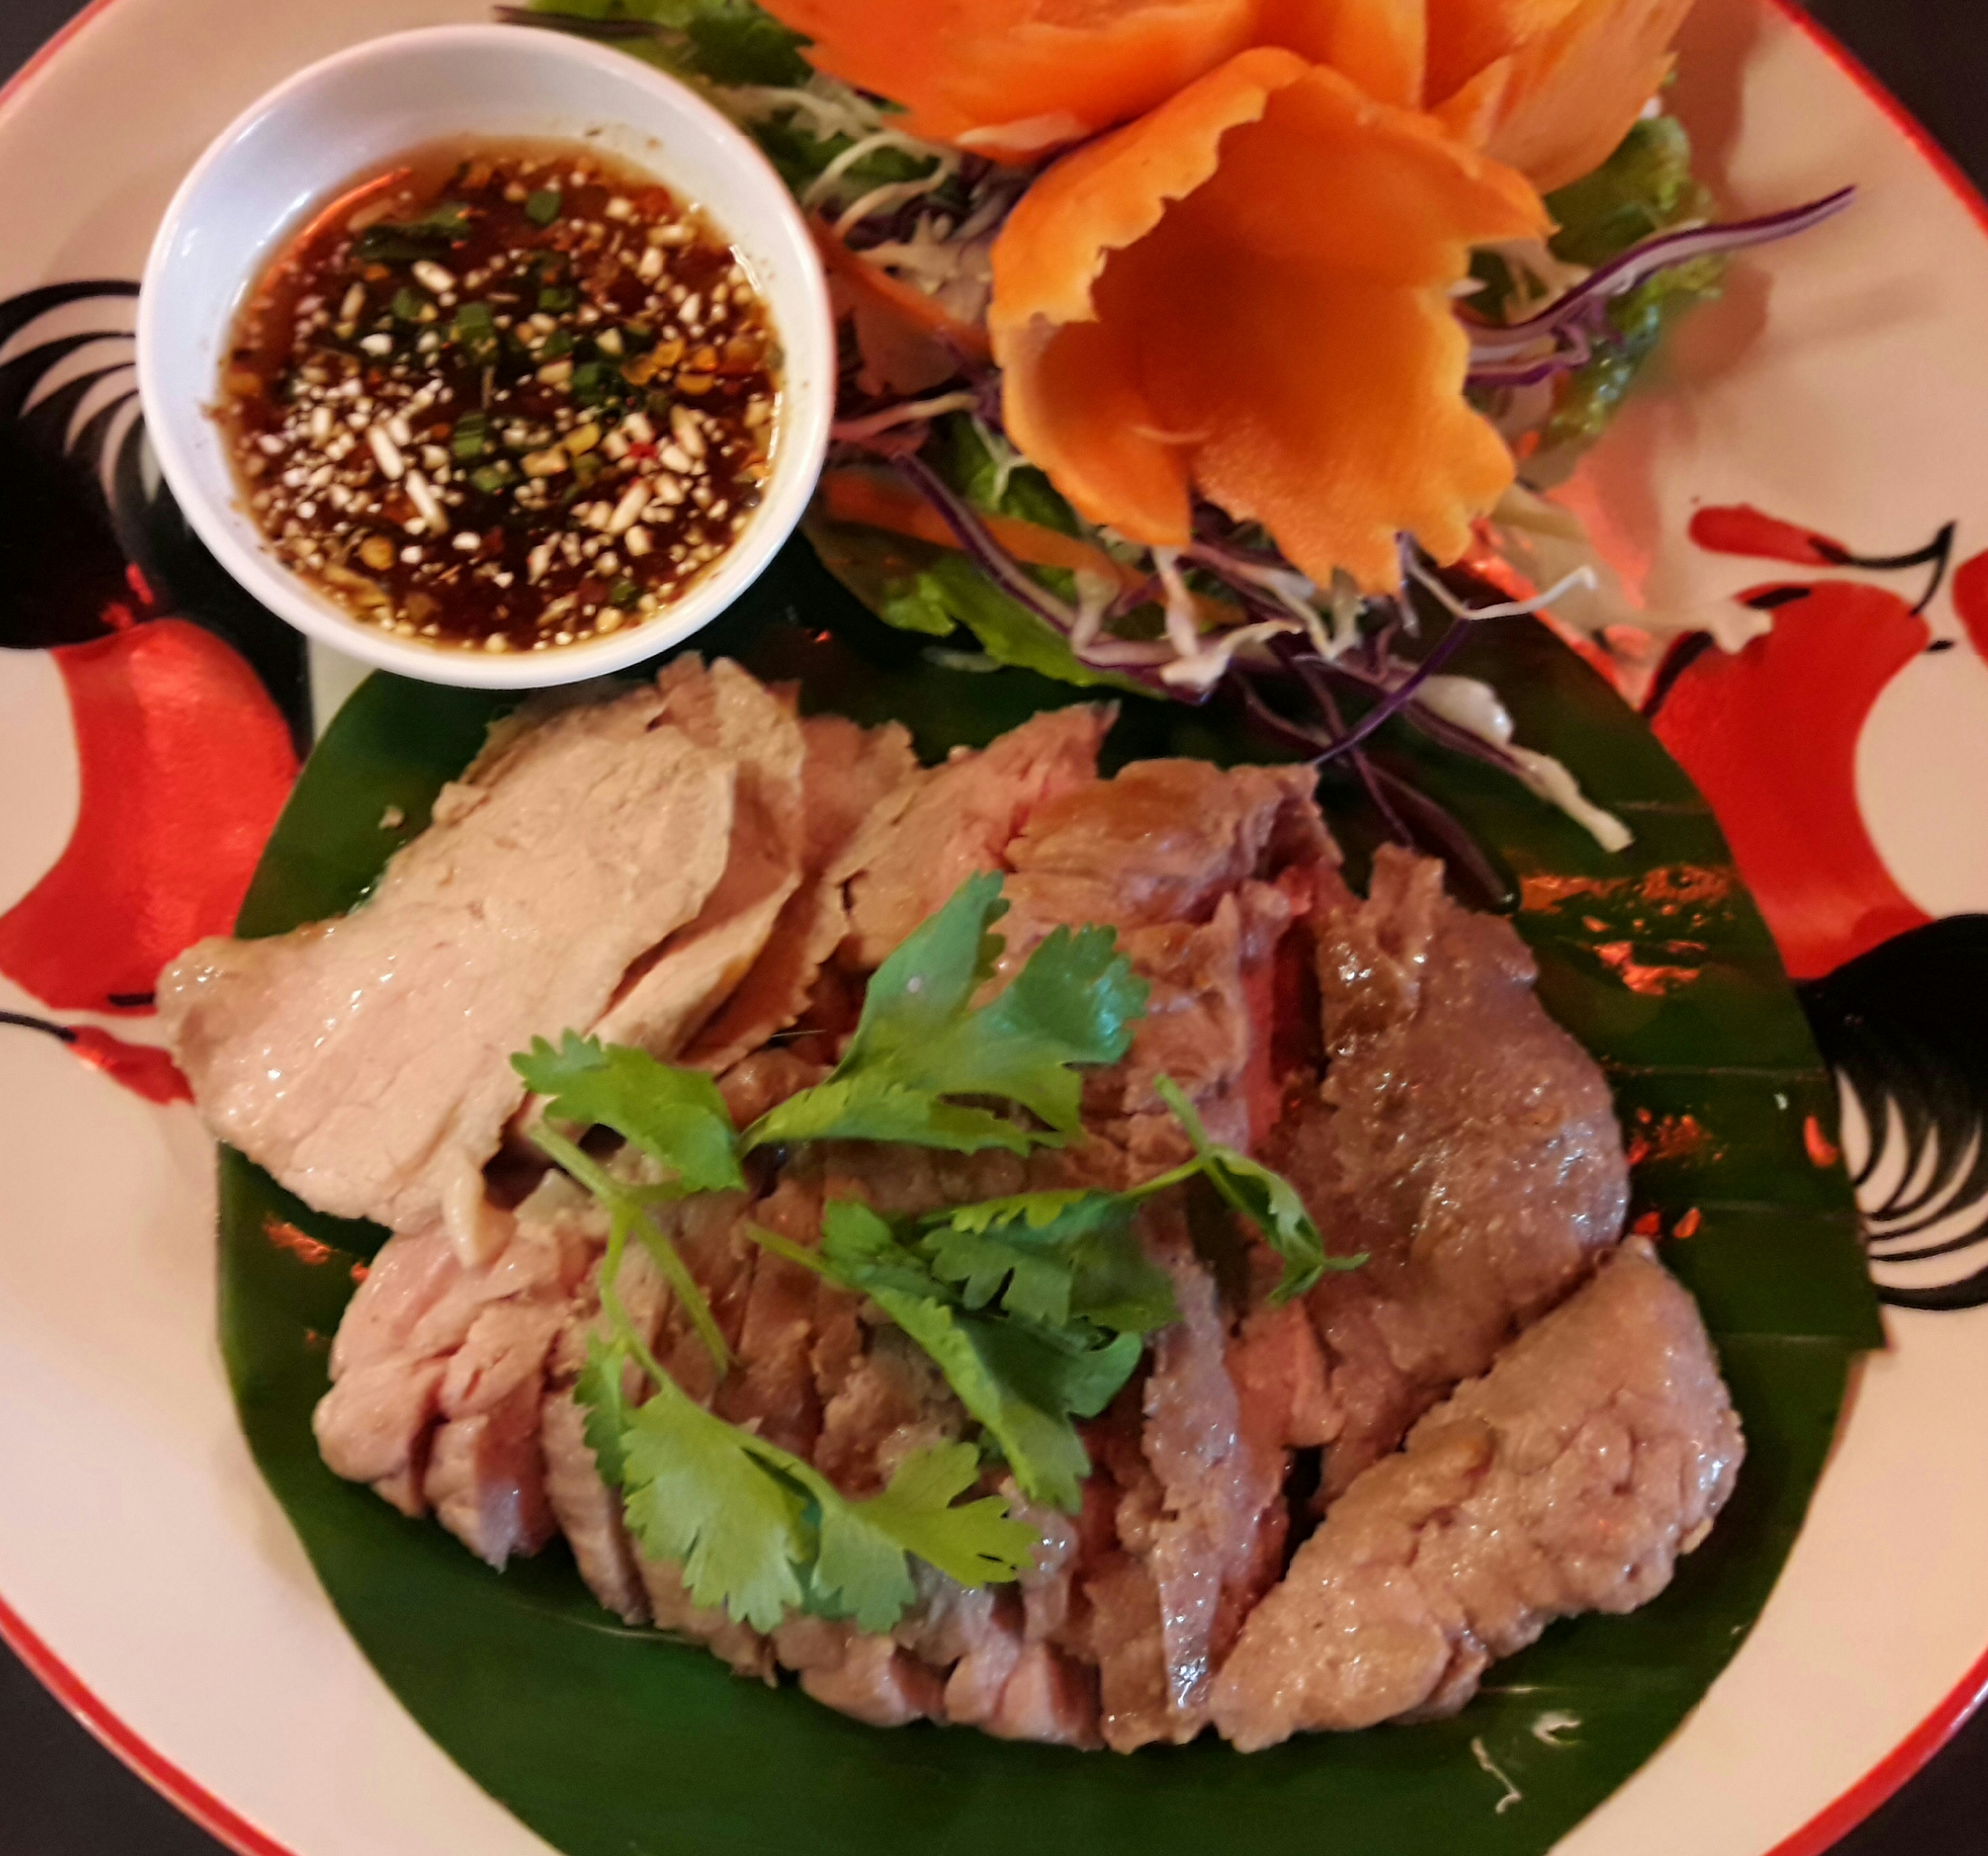 Grilled Pork neck with chili sauce ./คอหมูย่าง